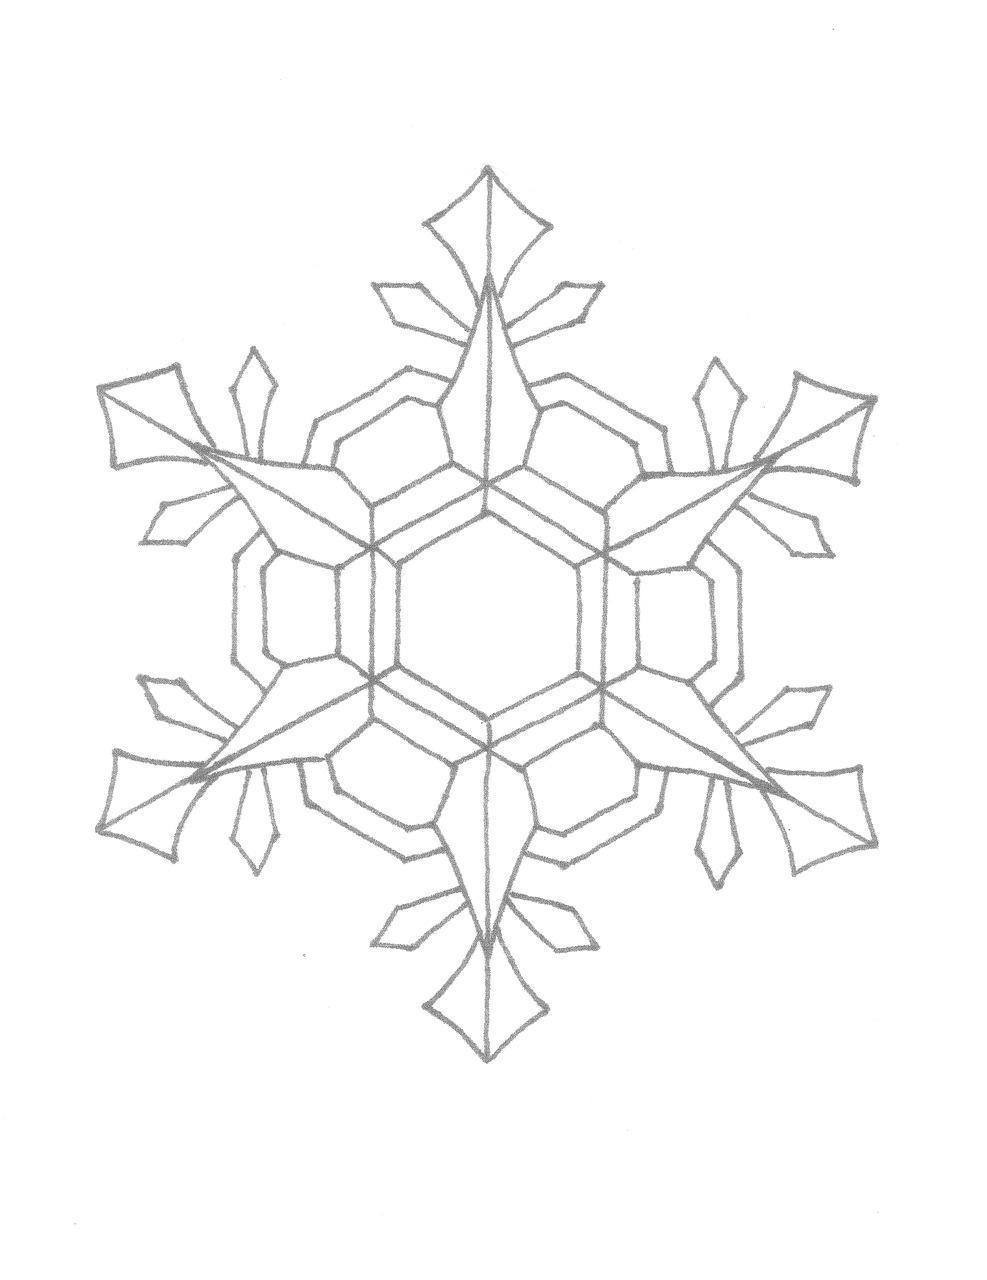 snowflakes coloring page printable snowflake coloring pages for kids cool2bkids page coloring snowflakes 1 1